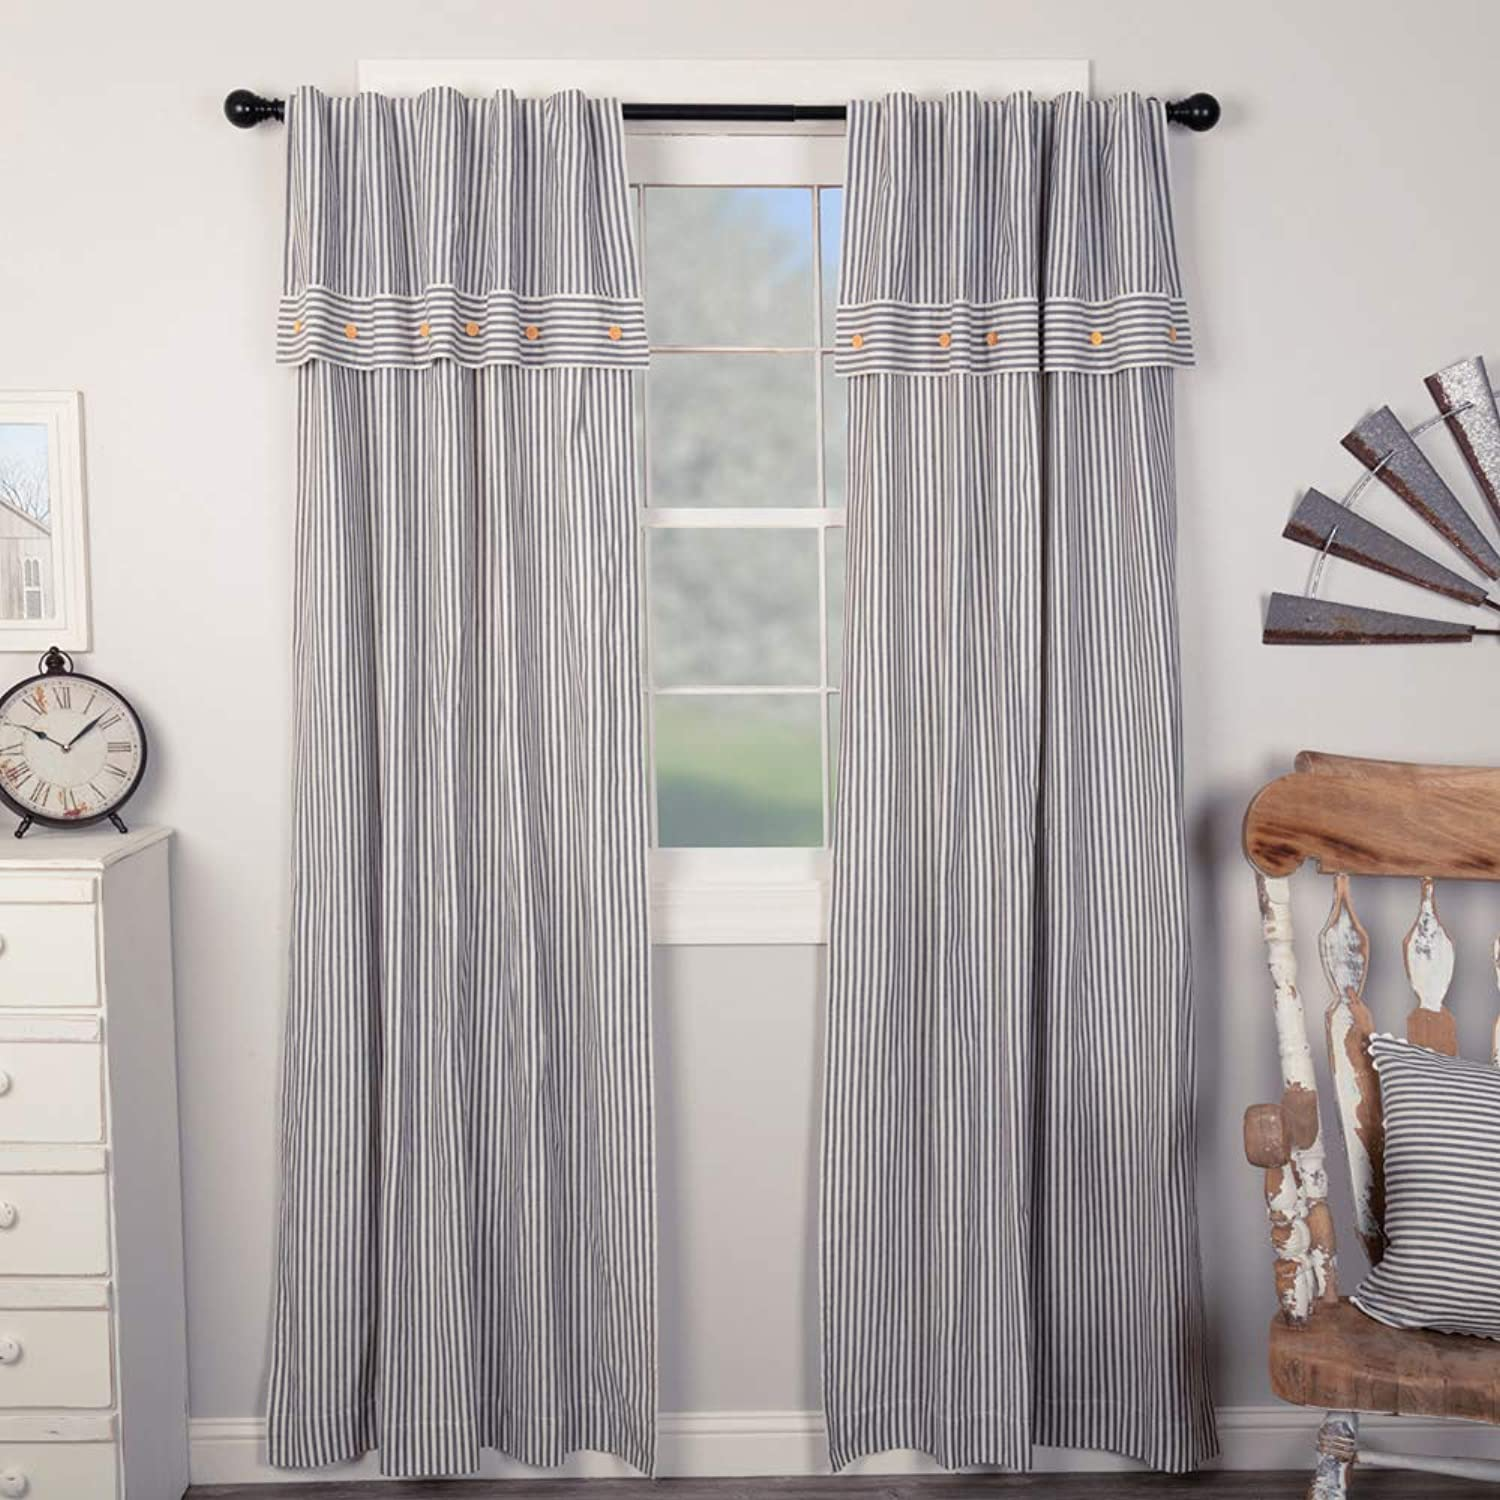 Piper Classics Farmhouse Ticking Stripe bluee Panel Curtains, Set of 2, 84  x 40 , with Attached Valance